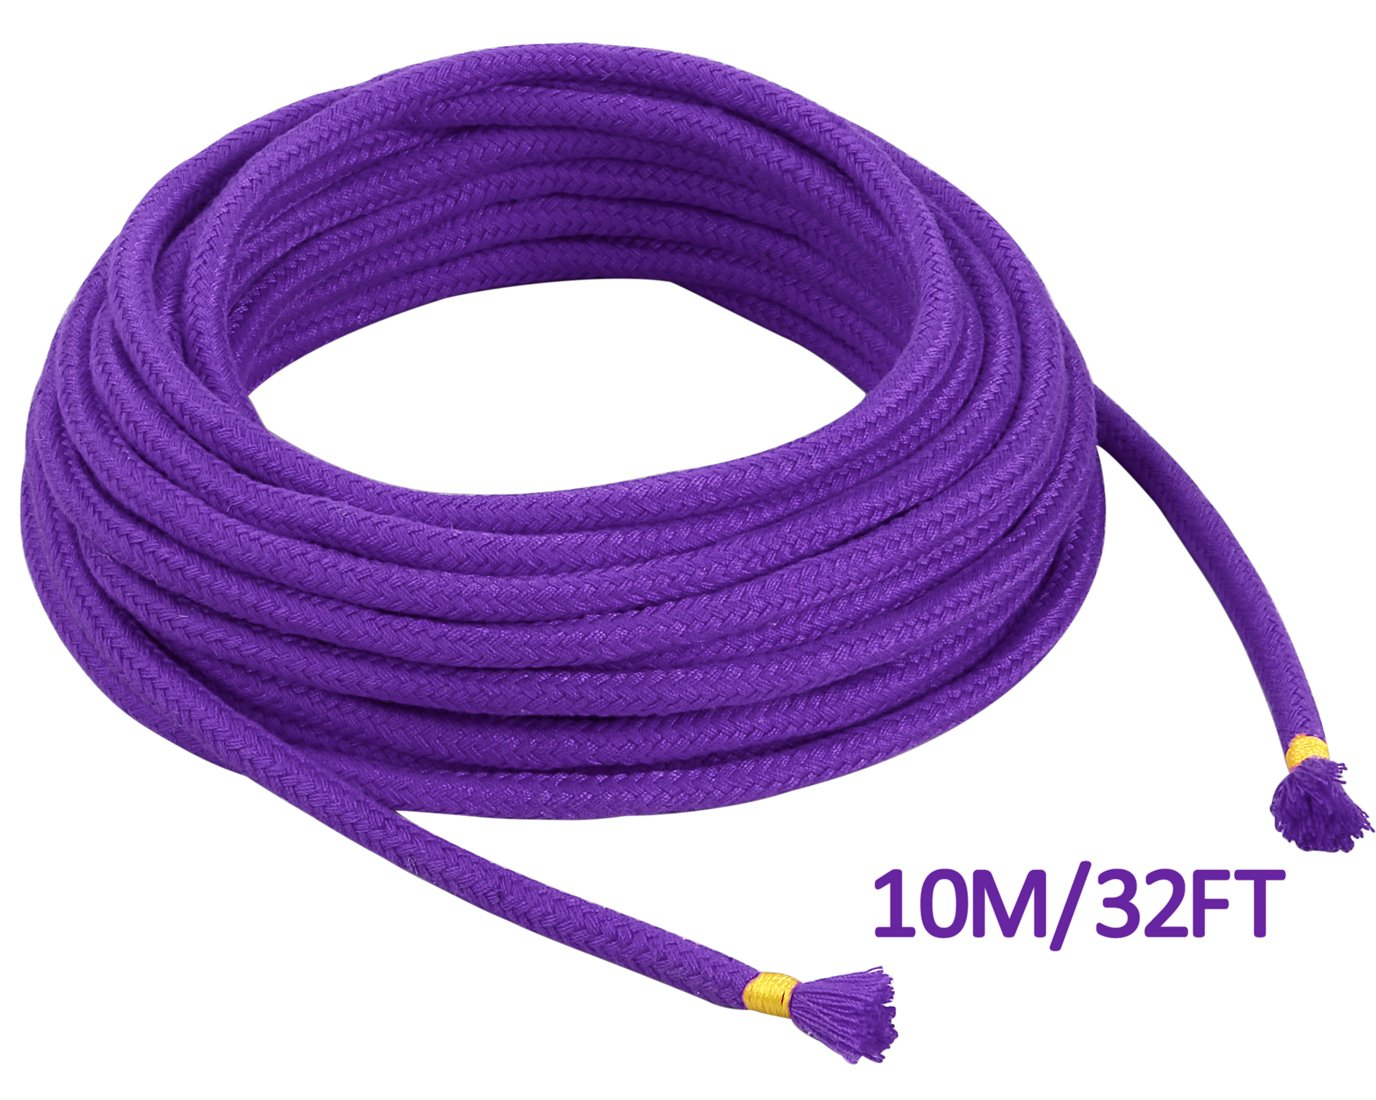 BONTIME All-Purpose Soft Cotton Rope - 32 Feet Length,1/3-Inch Diameter (Red,Black,Purple,Pack of 3) by BONTIME (Image #5)